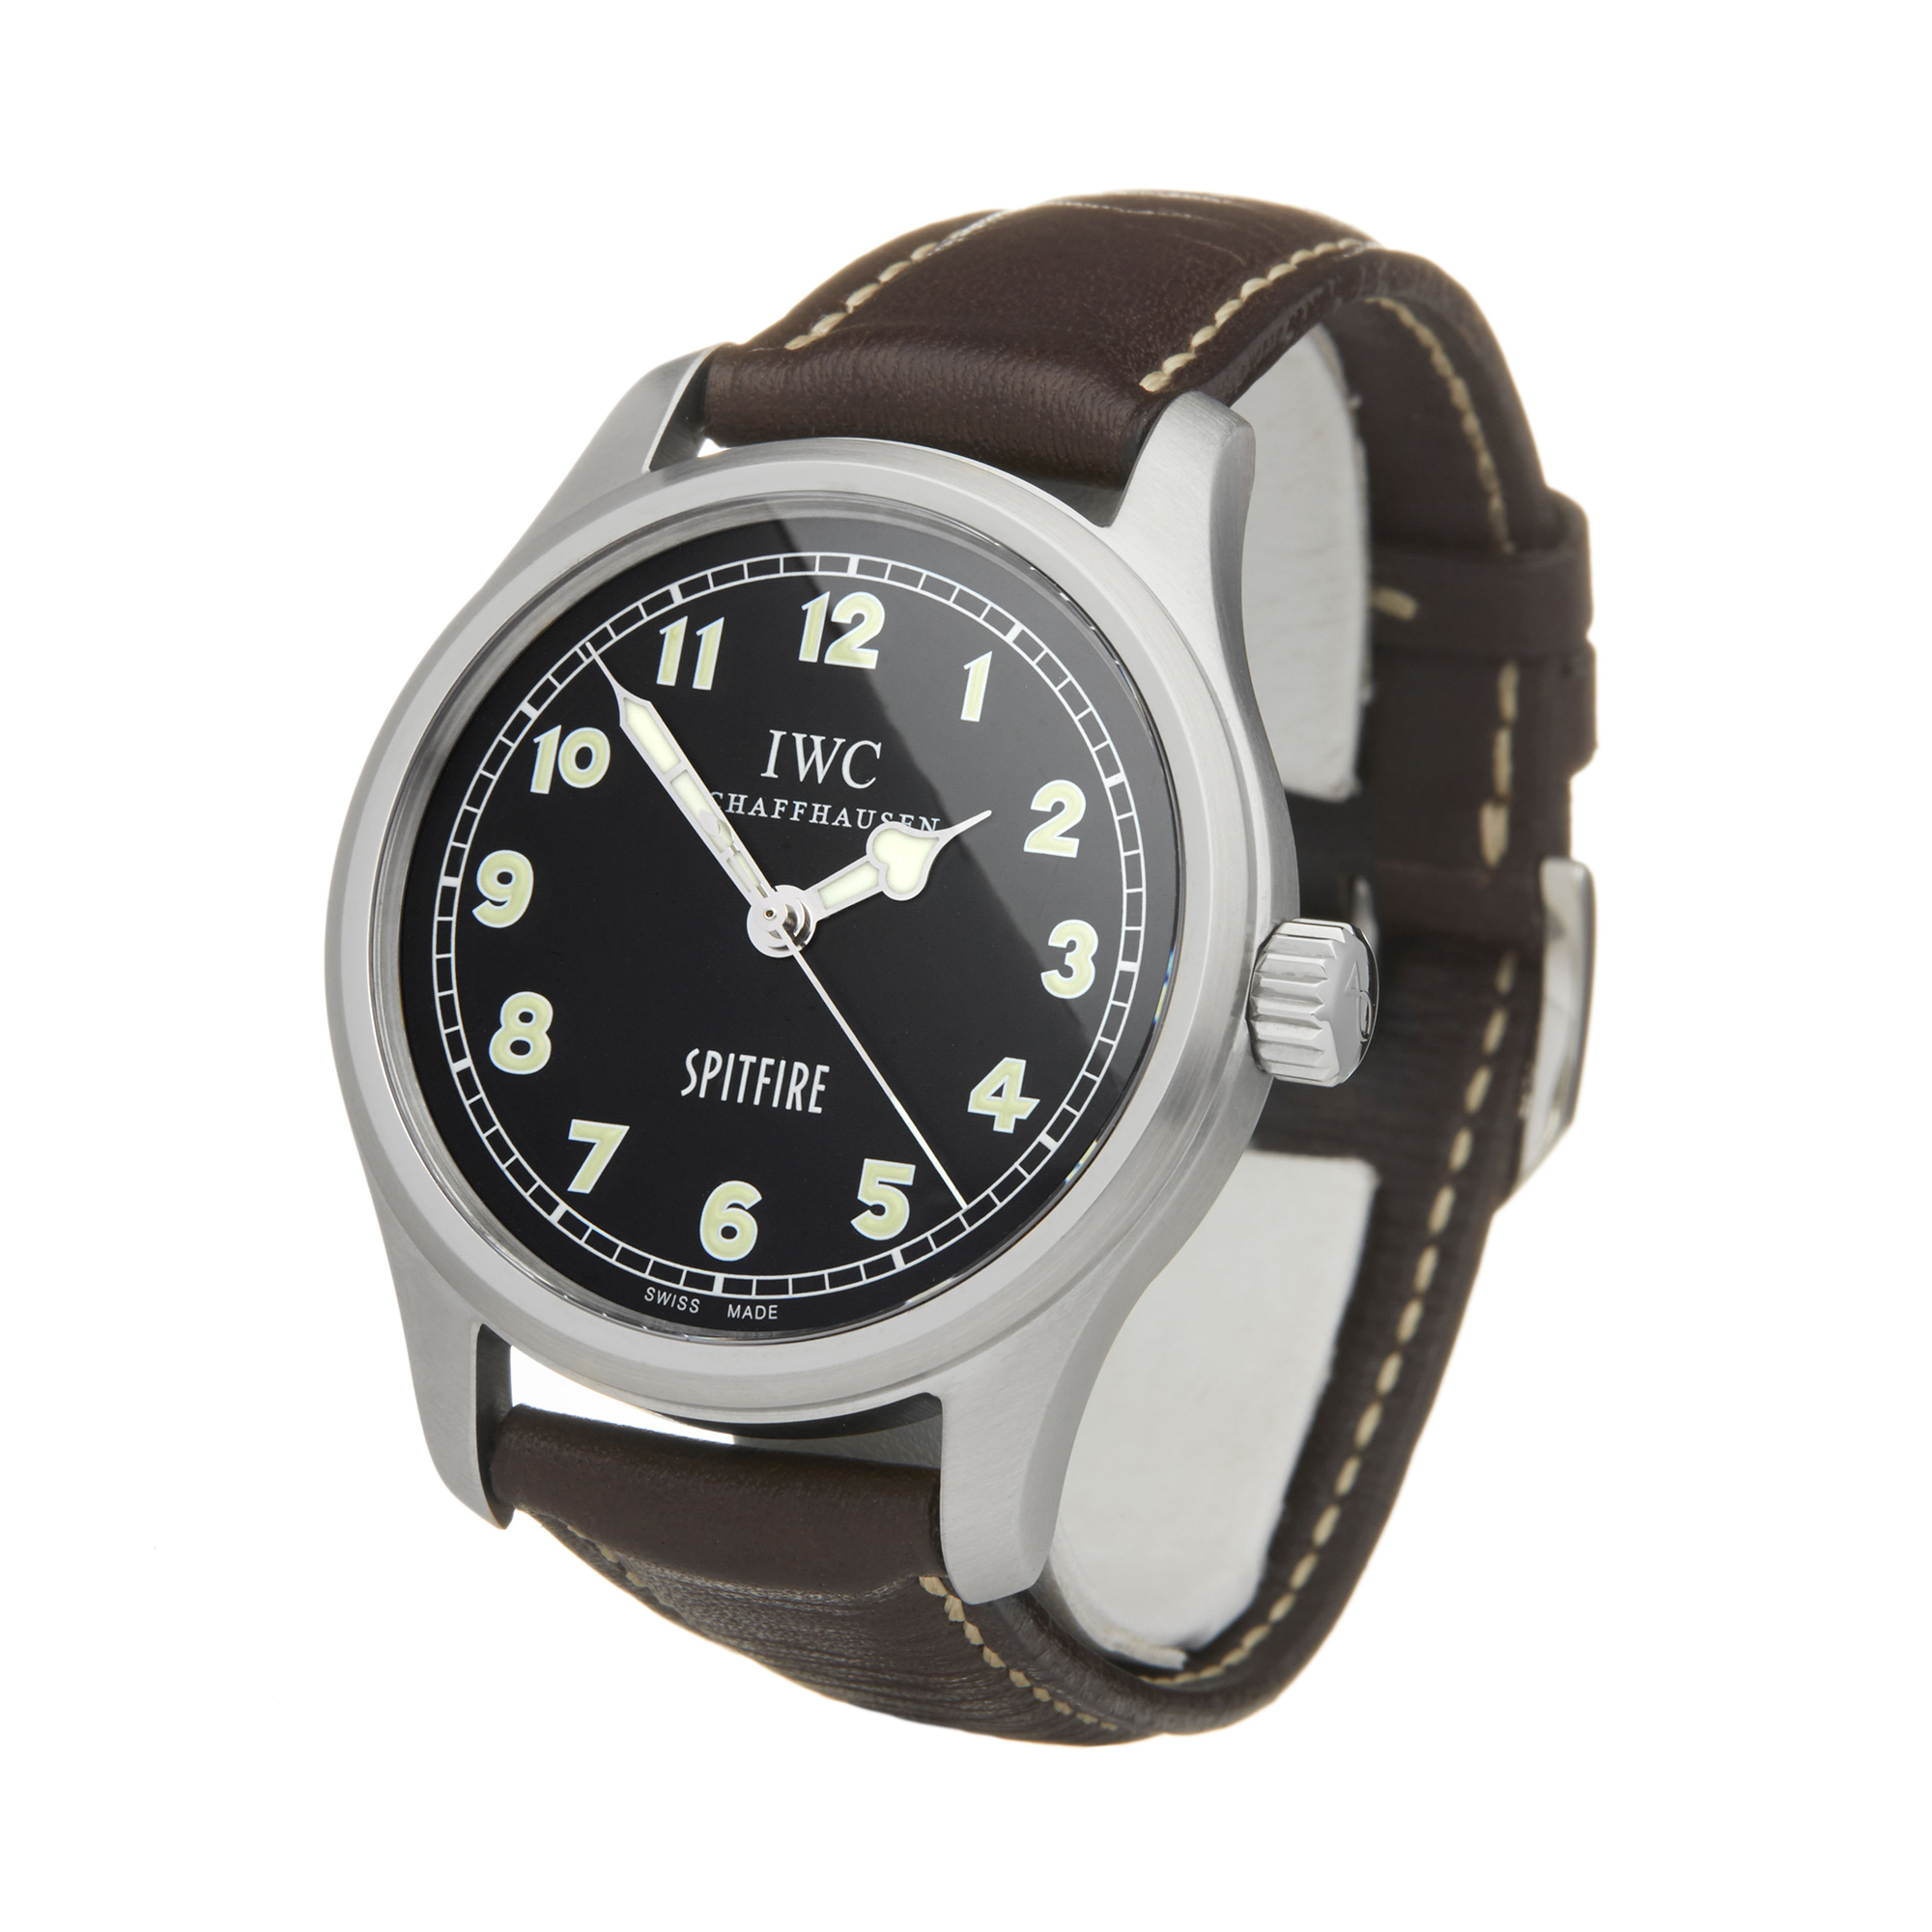 Pilot's Spitfire IW325305 Men Stainless Steel MK XV Limited Edition of 1000 pieces Watch - Image 9 of 10